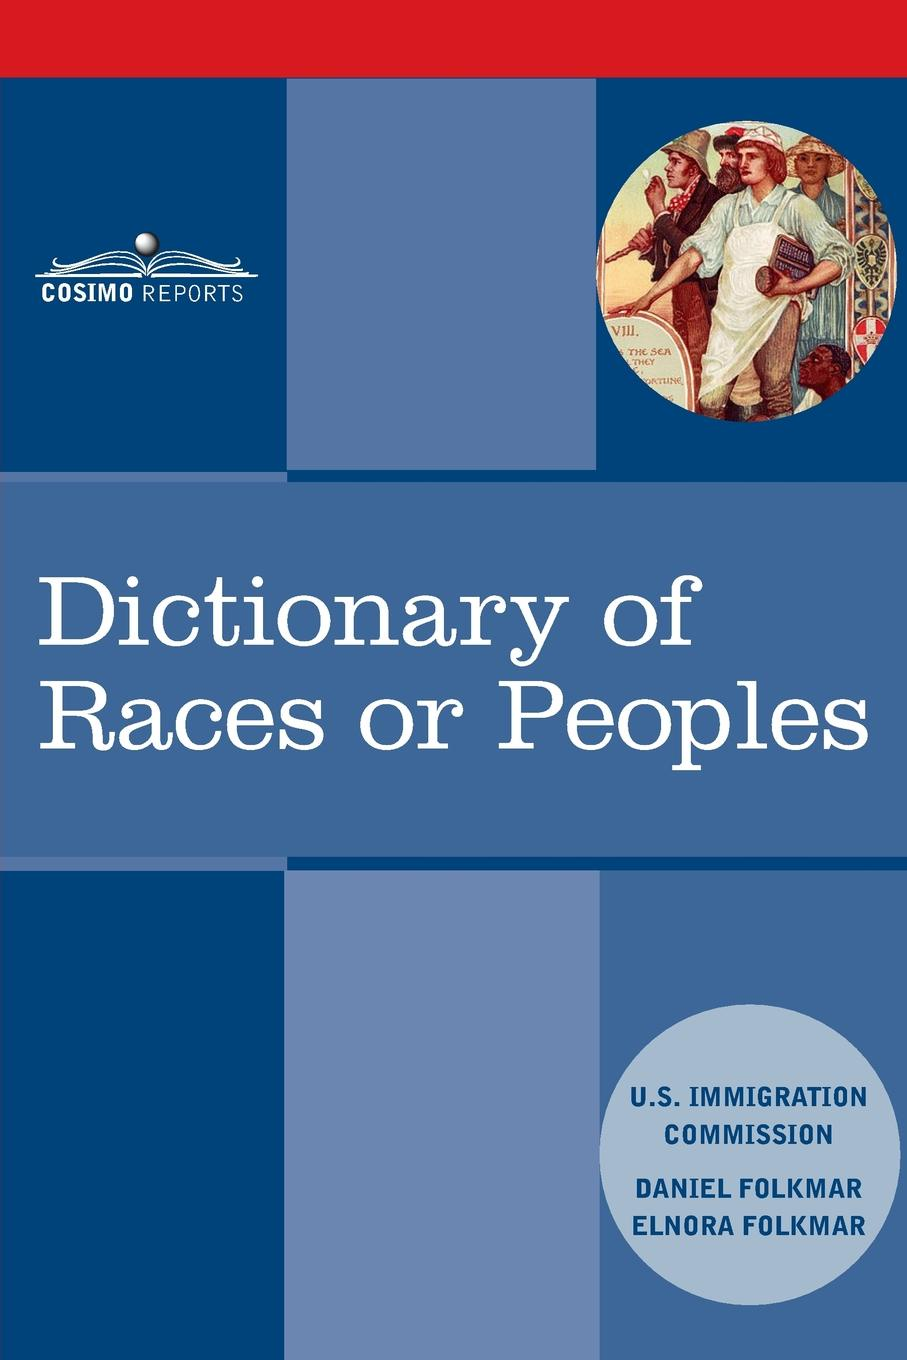 US Immigration Commission, Daniel Folkmar, Elnora Folkmar Dictionary of Races or Peoples